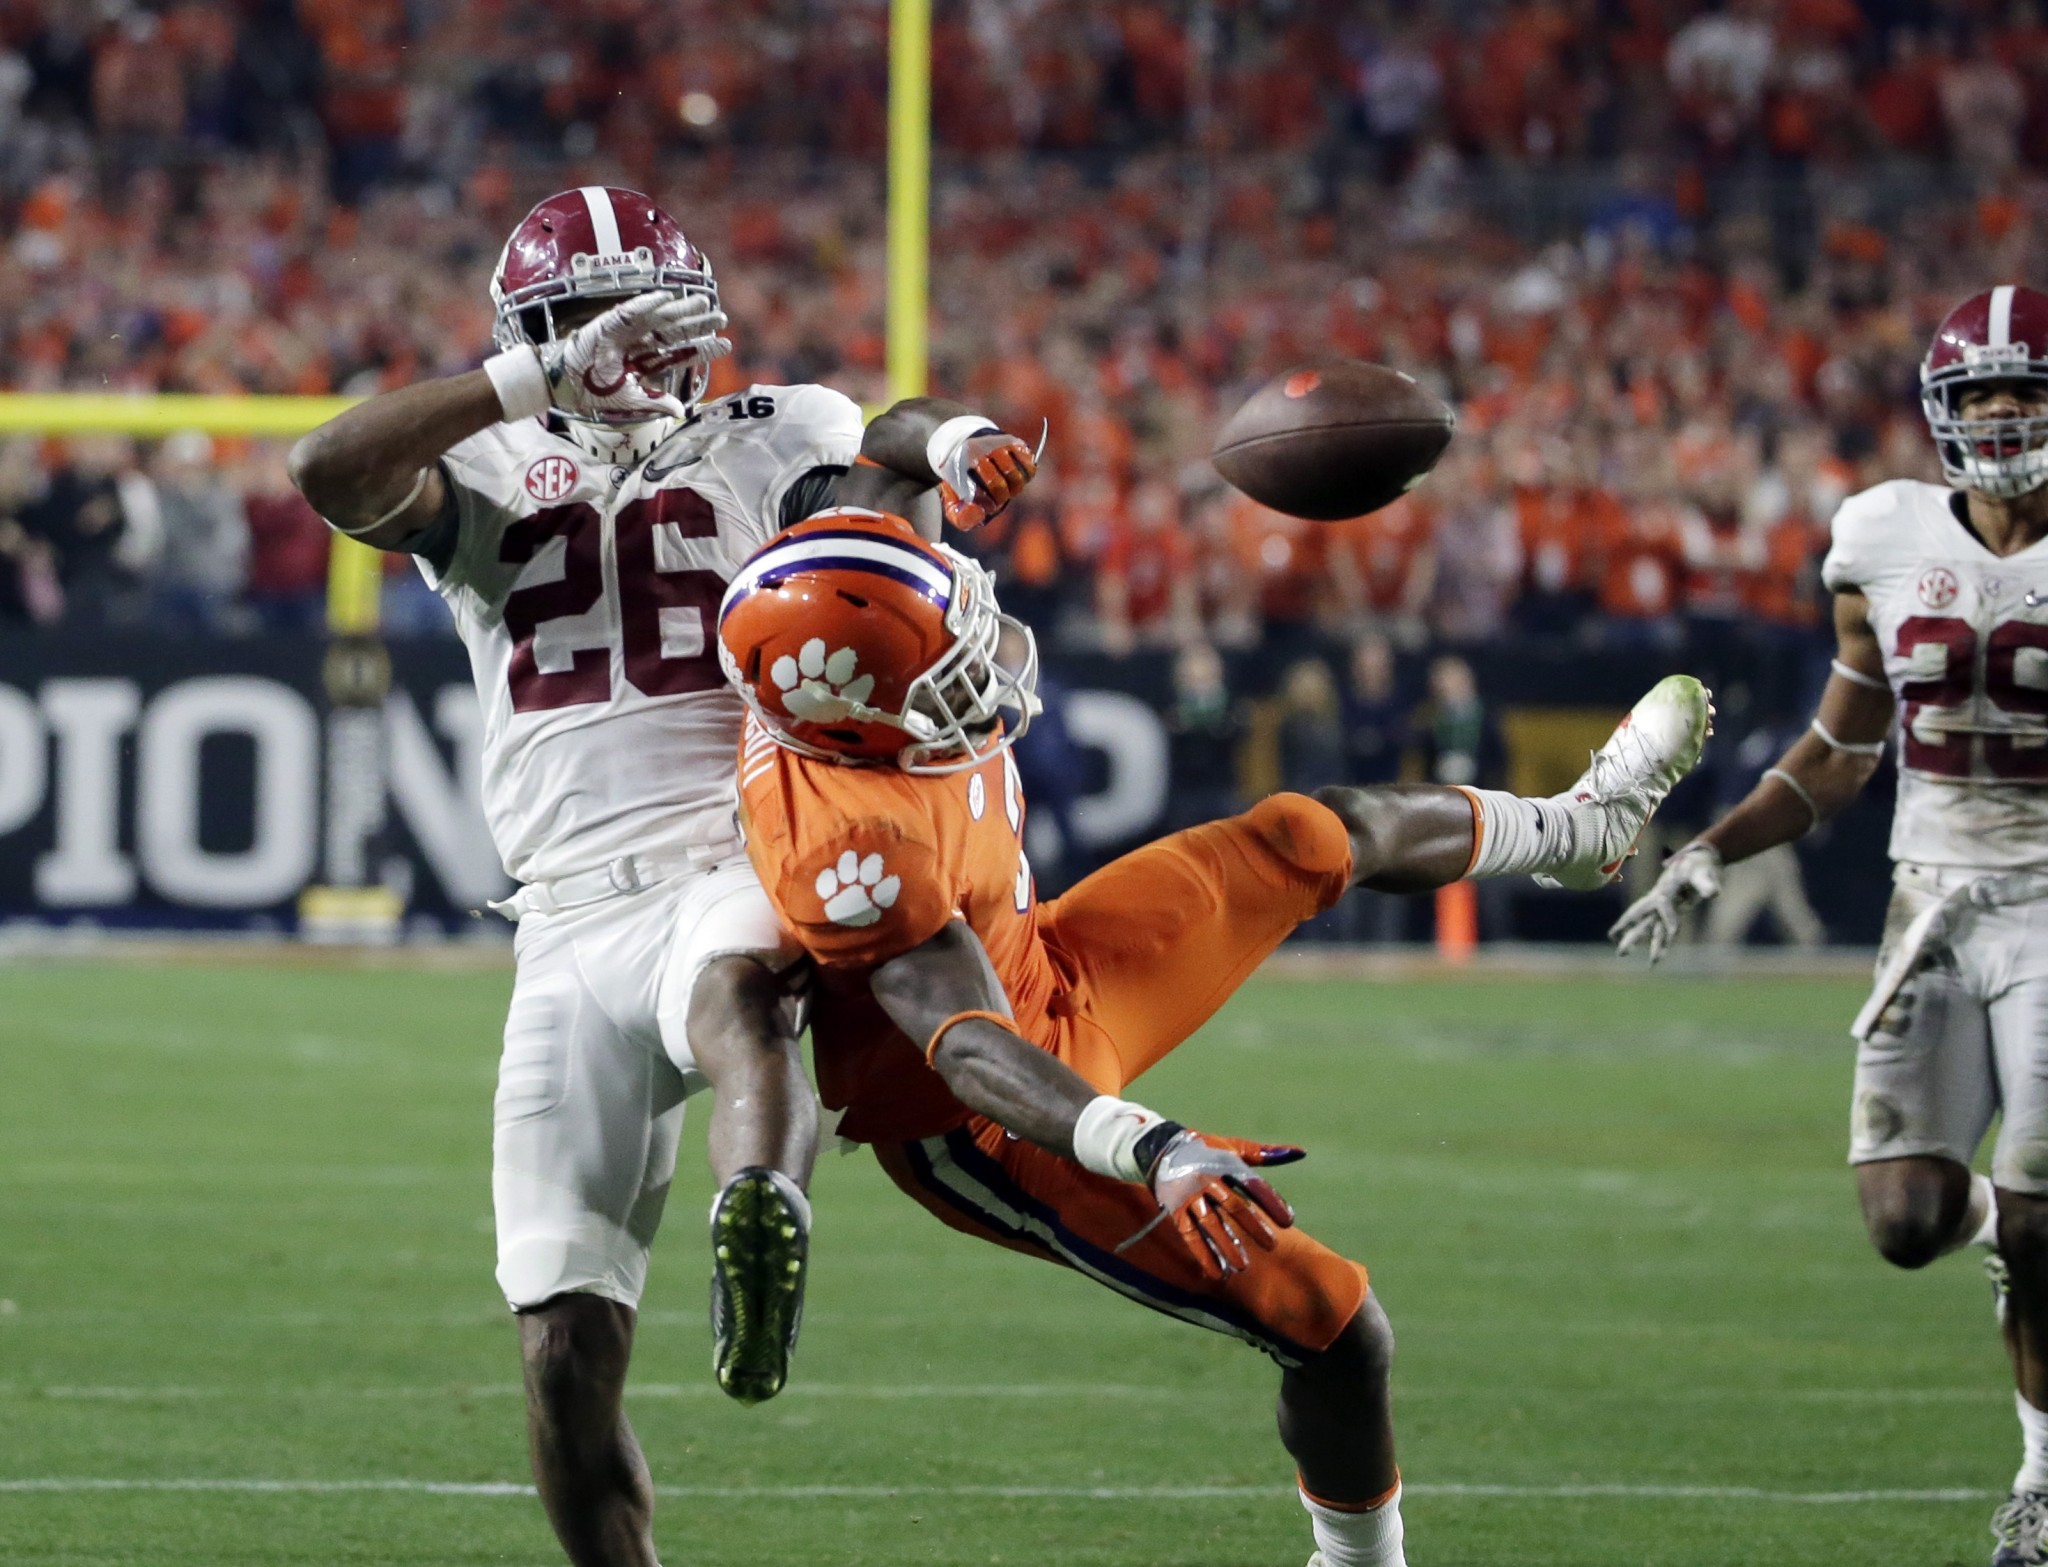 Alabama CB Marlon Humphrey. (AP Photo/Chris Carlson)